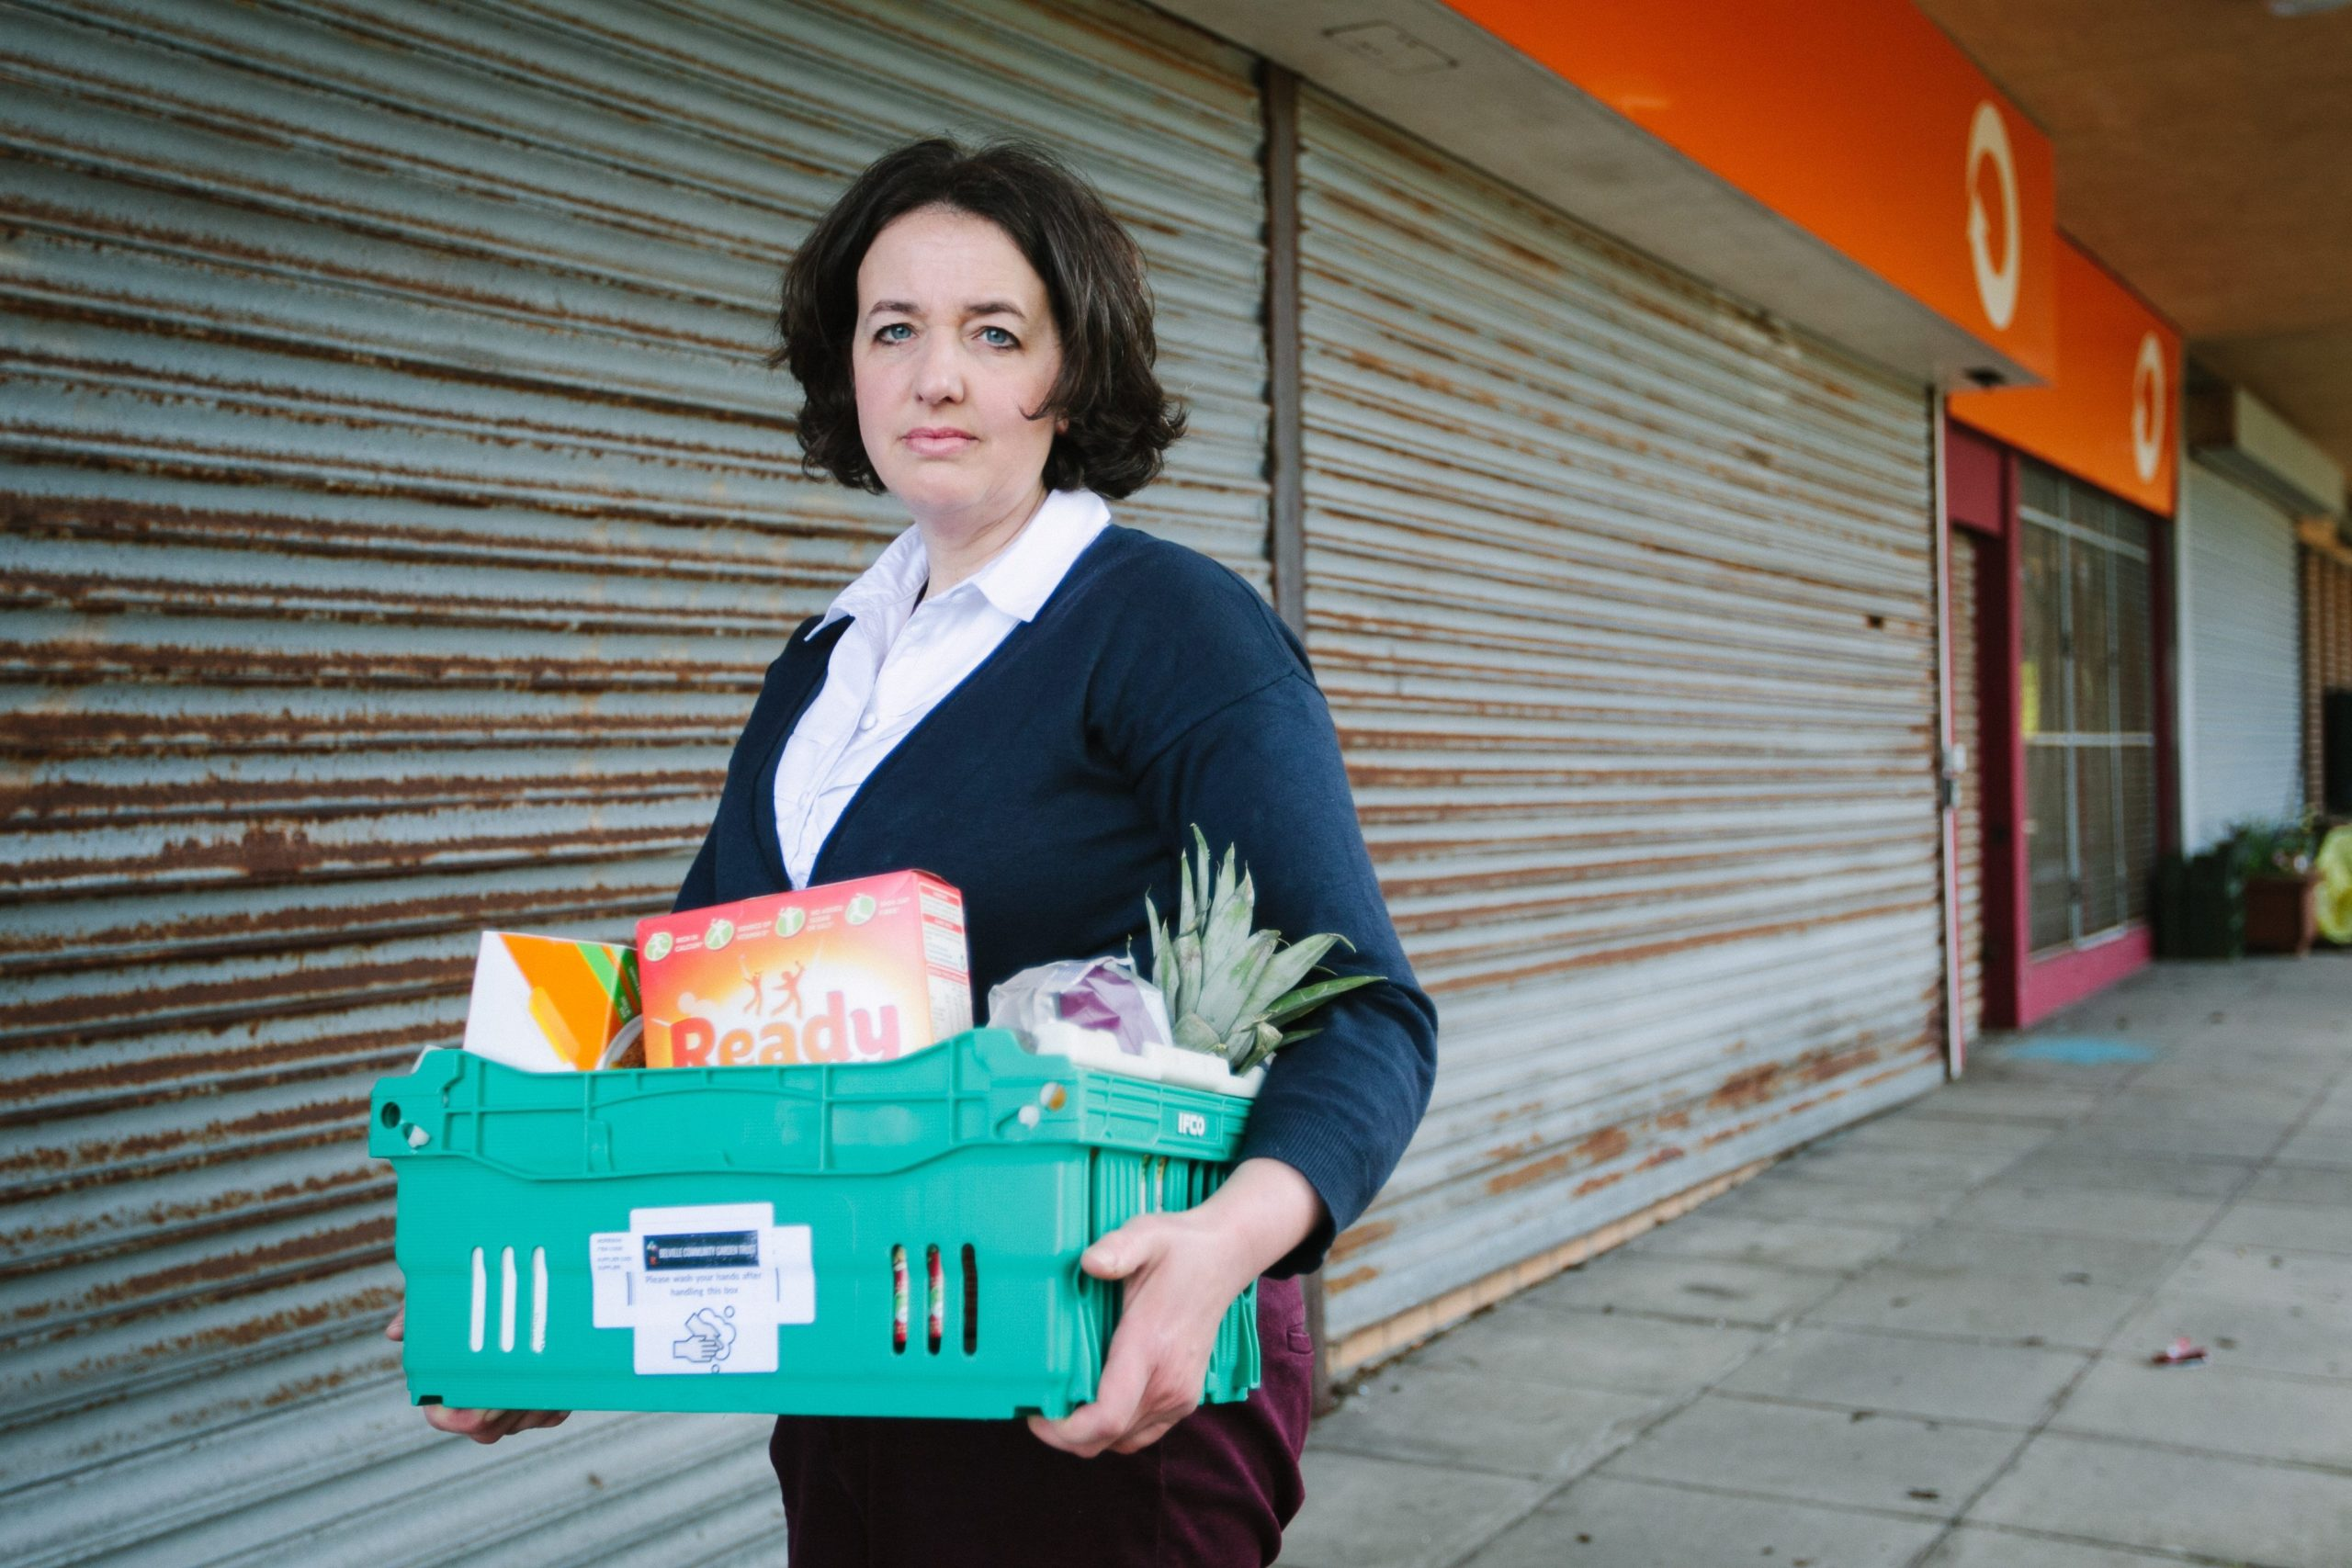 Laura Reilly at Crawfurds Burn Community Centre in Greenock with a food box for the vulnerable